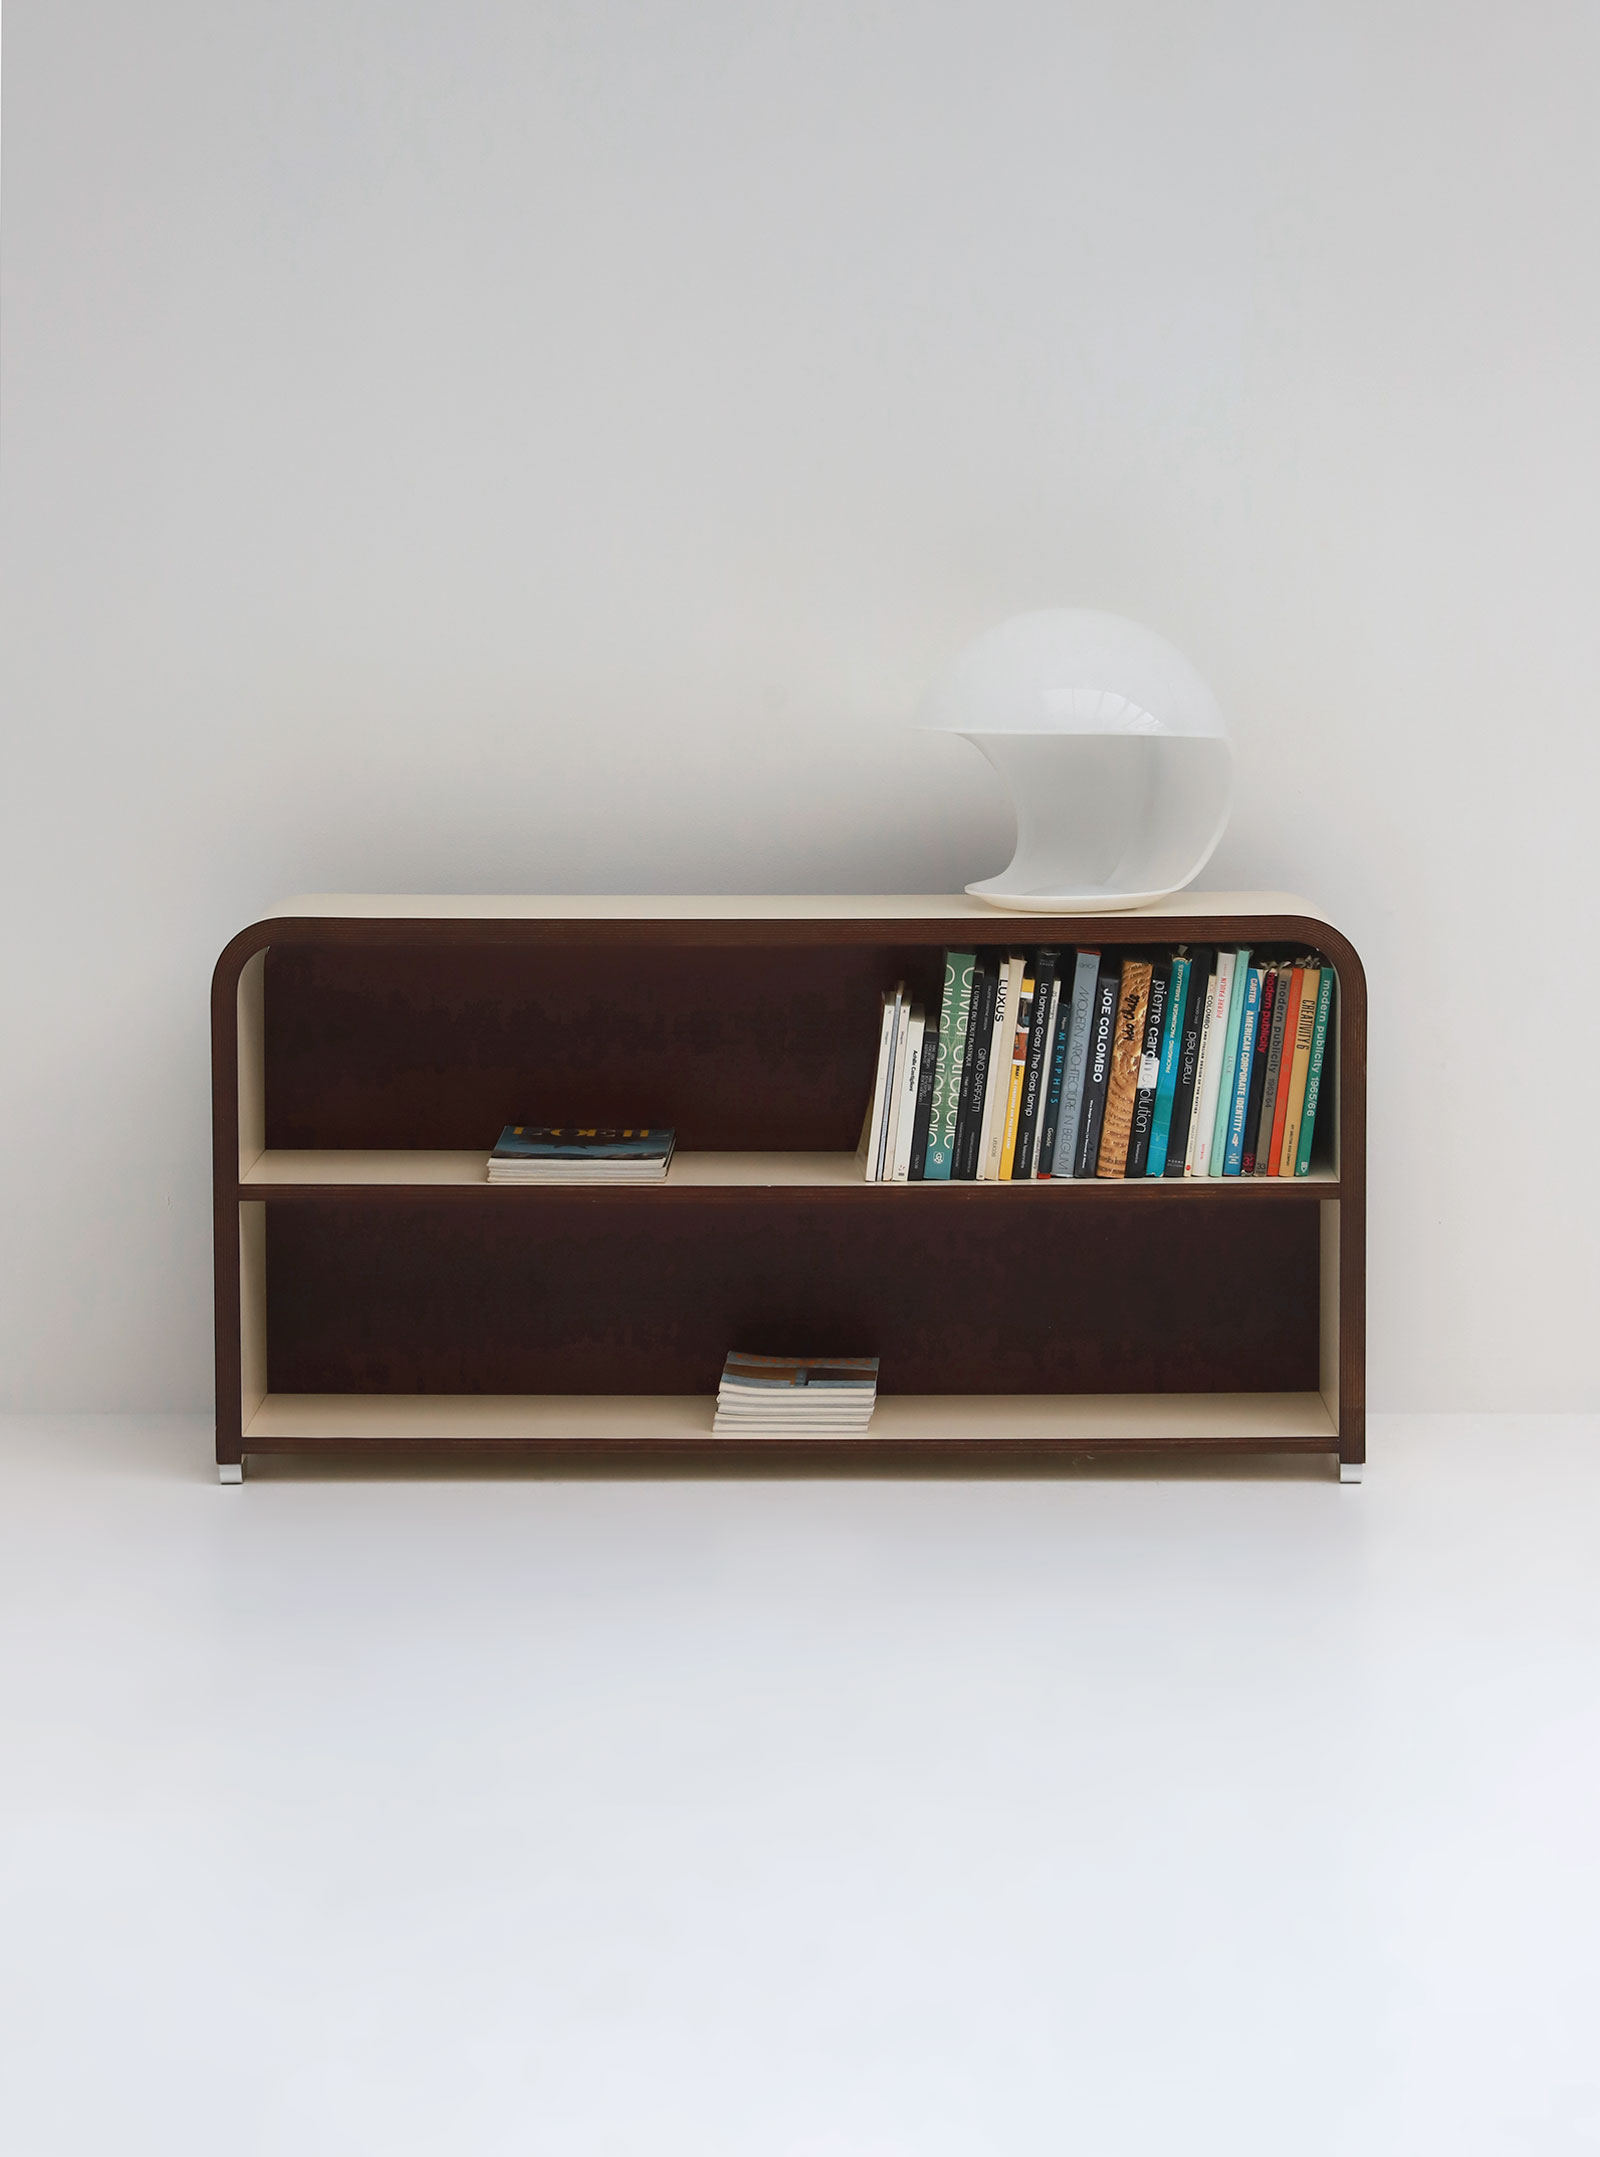 Jules Wabbes bookcase 1965image 1